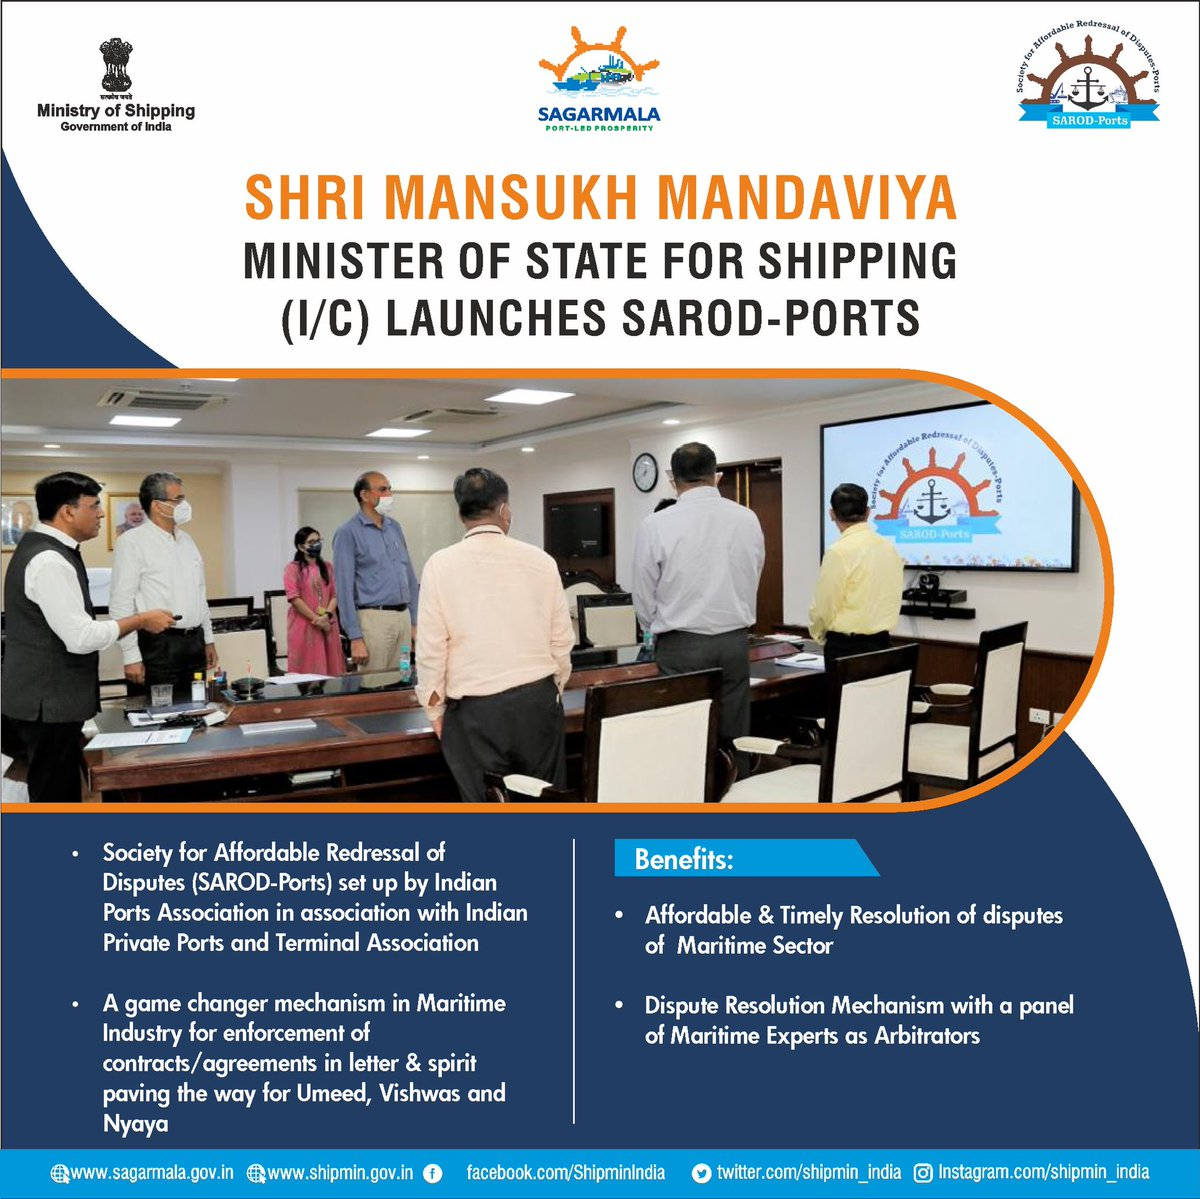 To promote #easeofdoingbusiness in maritime sector minister @mansukhmandviya launches 'SAROD-Ports' (Society for Affordable Redressal of Disputes - Ports). This will ensure Ummeed (hope), Vishwas(trust) and Nyaya (justice) in the dispute resolution mechanism. https://t.co/mBlblgpUPJ